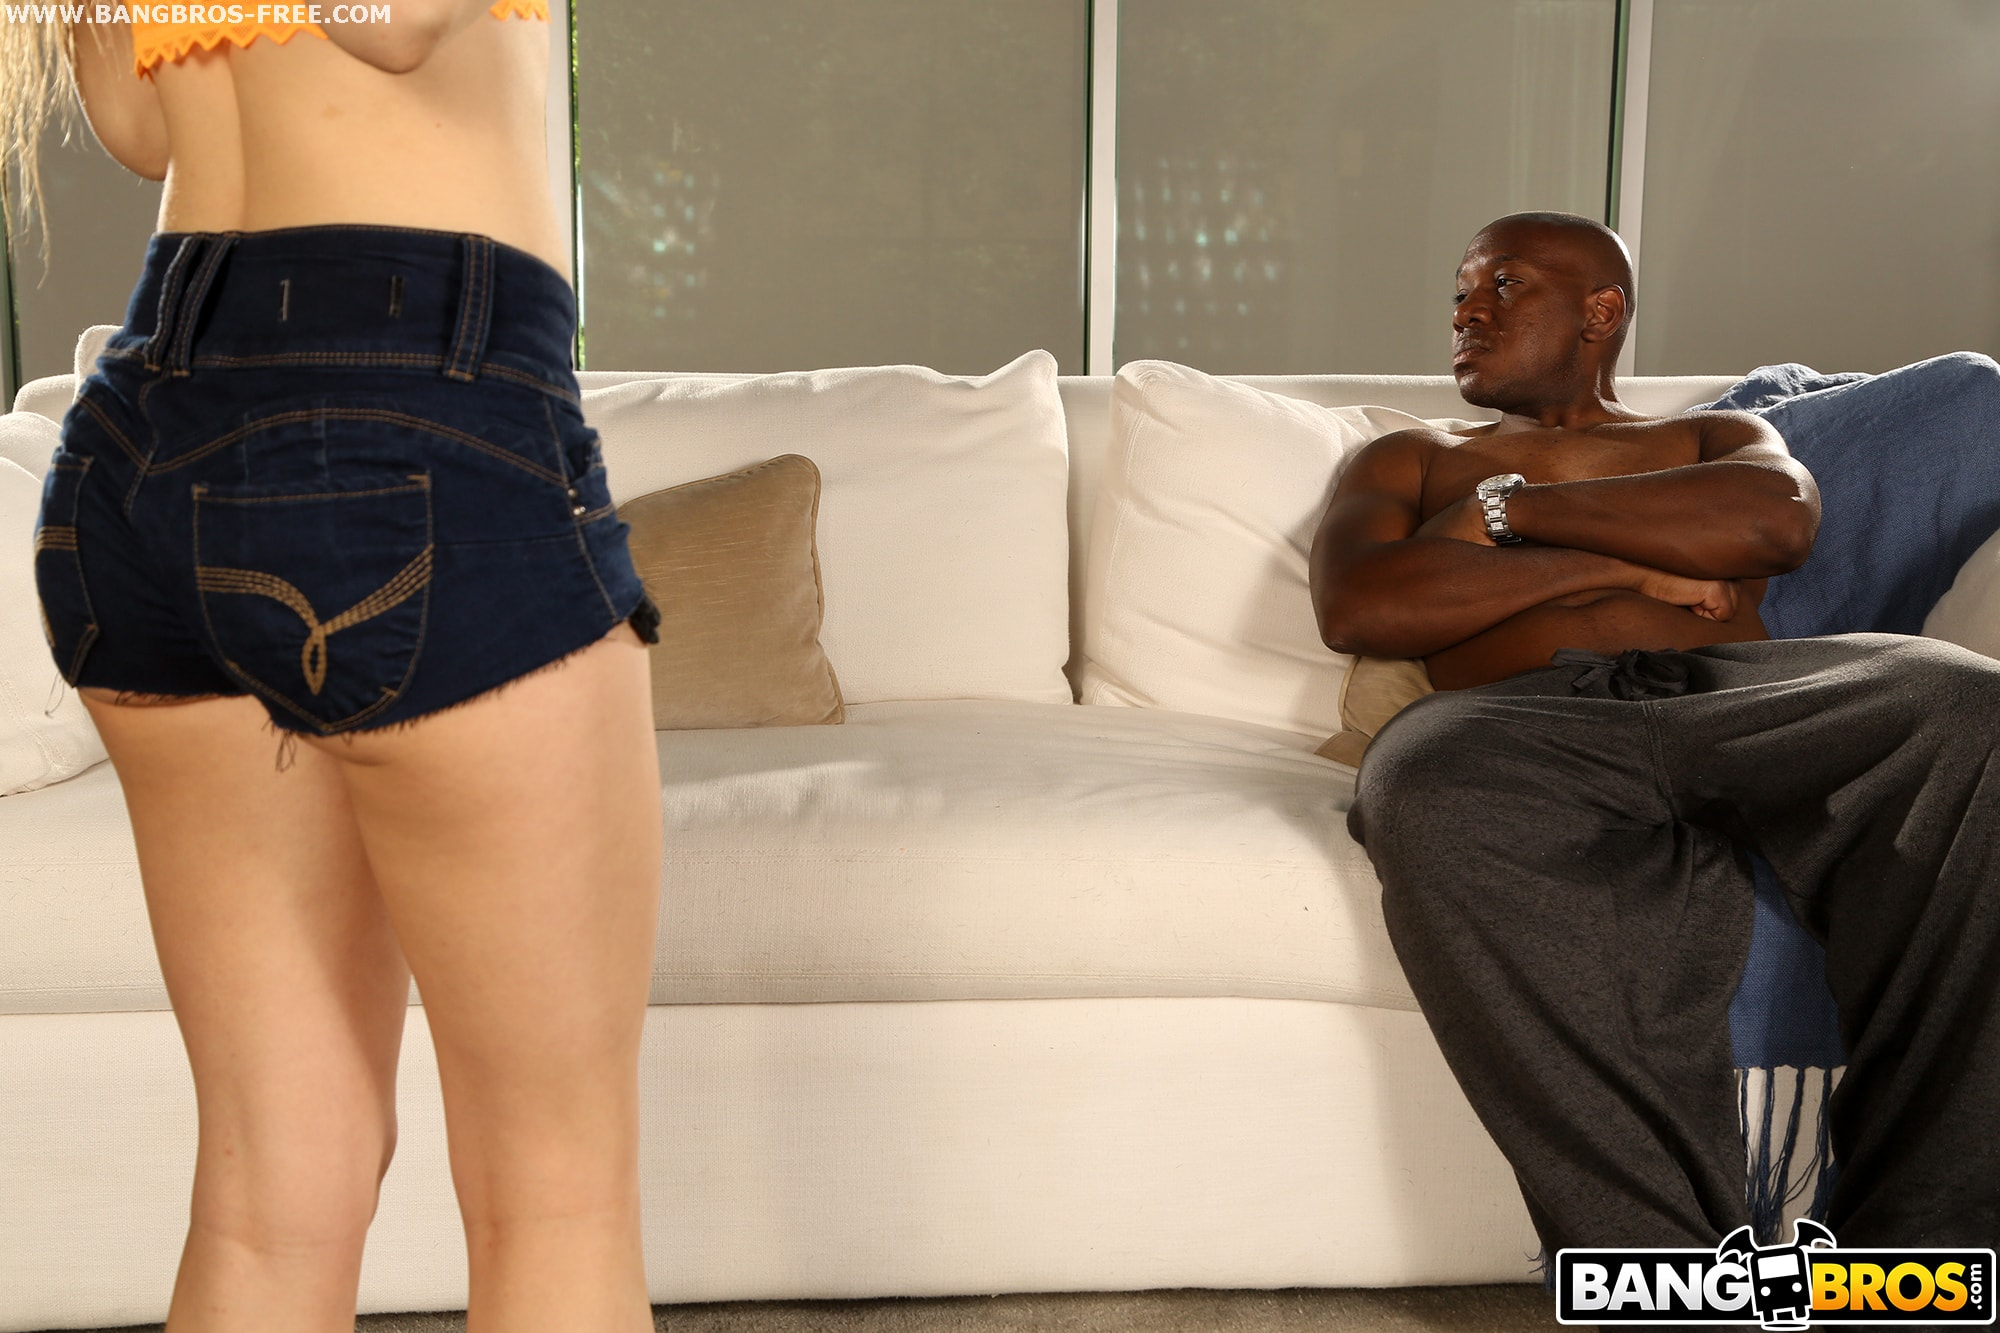 Bangbros 'The Real Cock Monster' starring Lilly Ford (Photo 125)